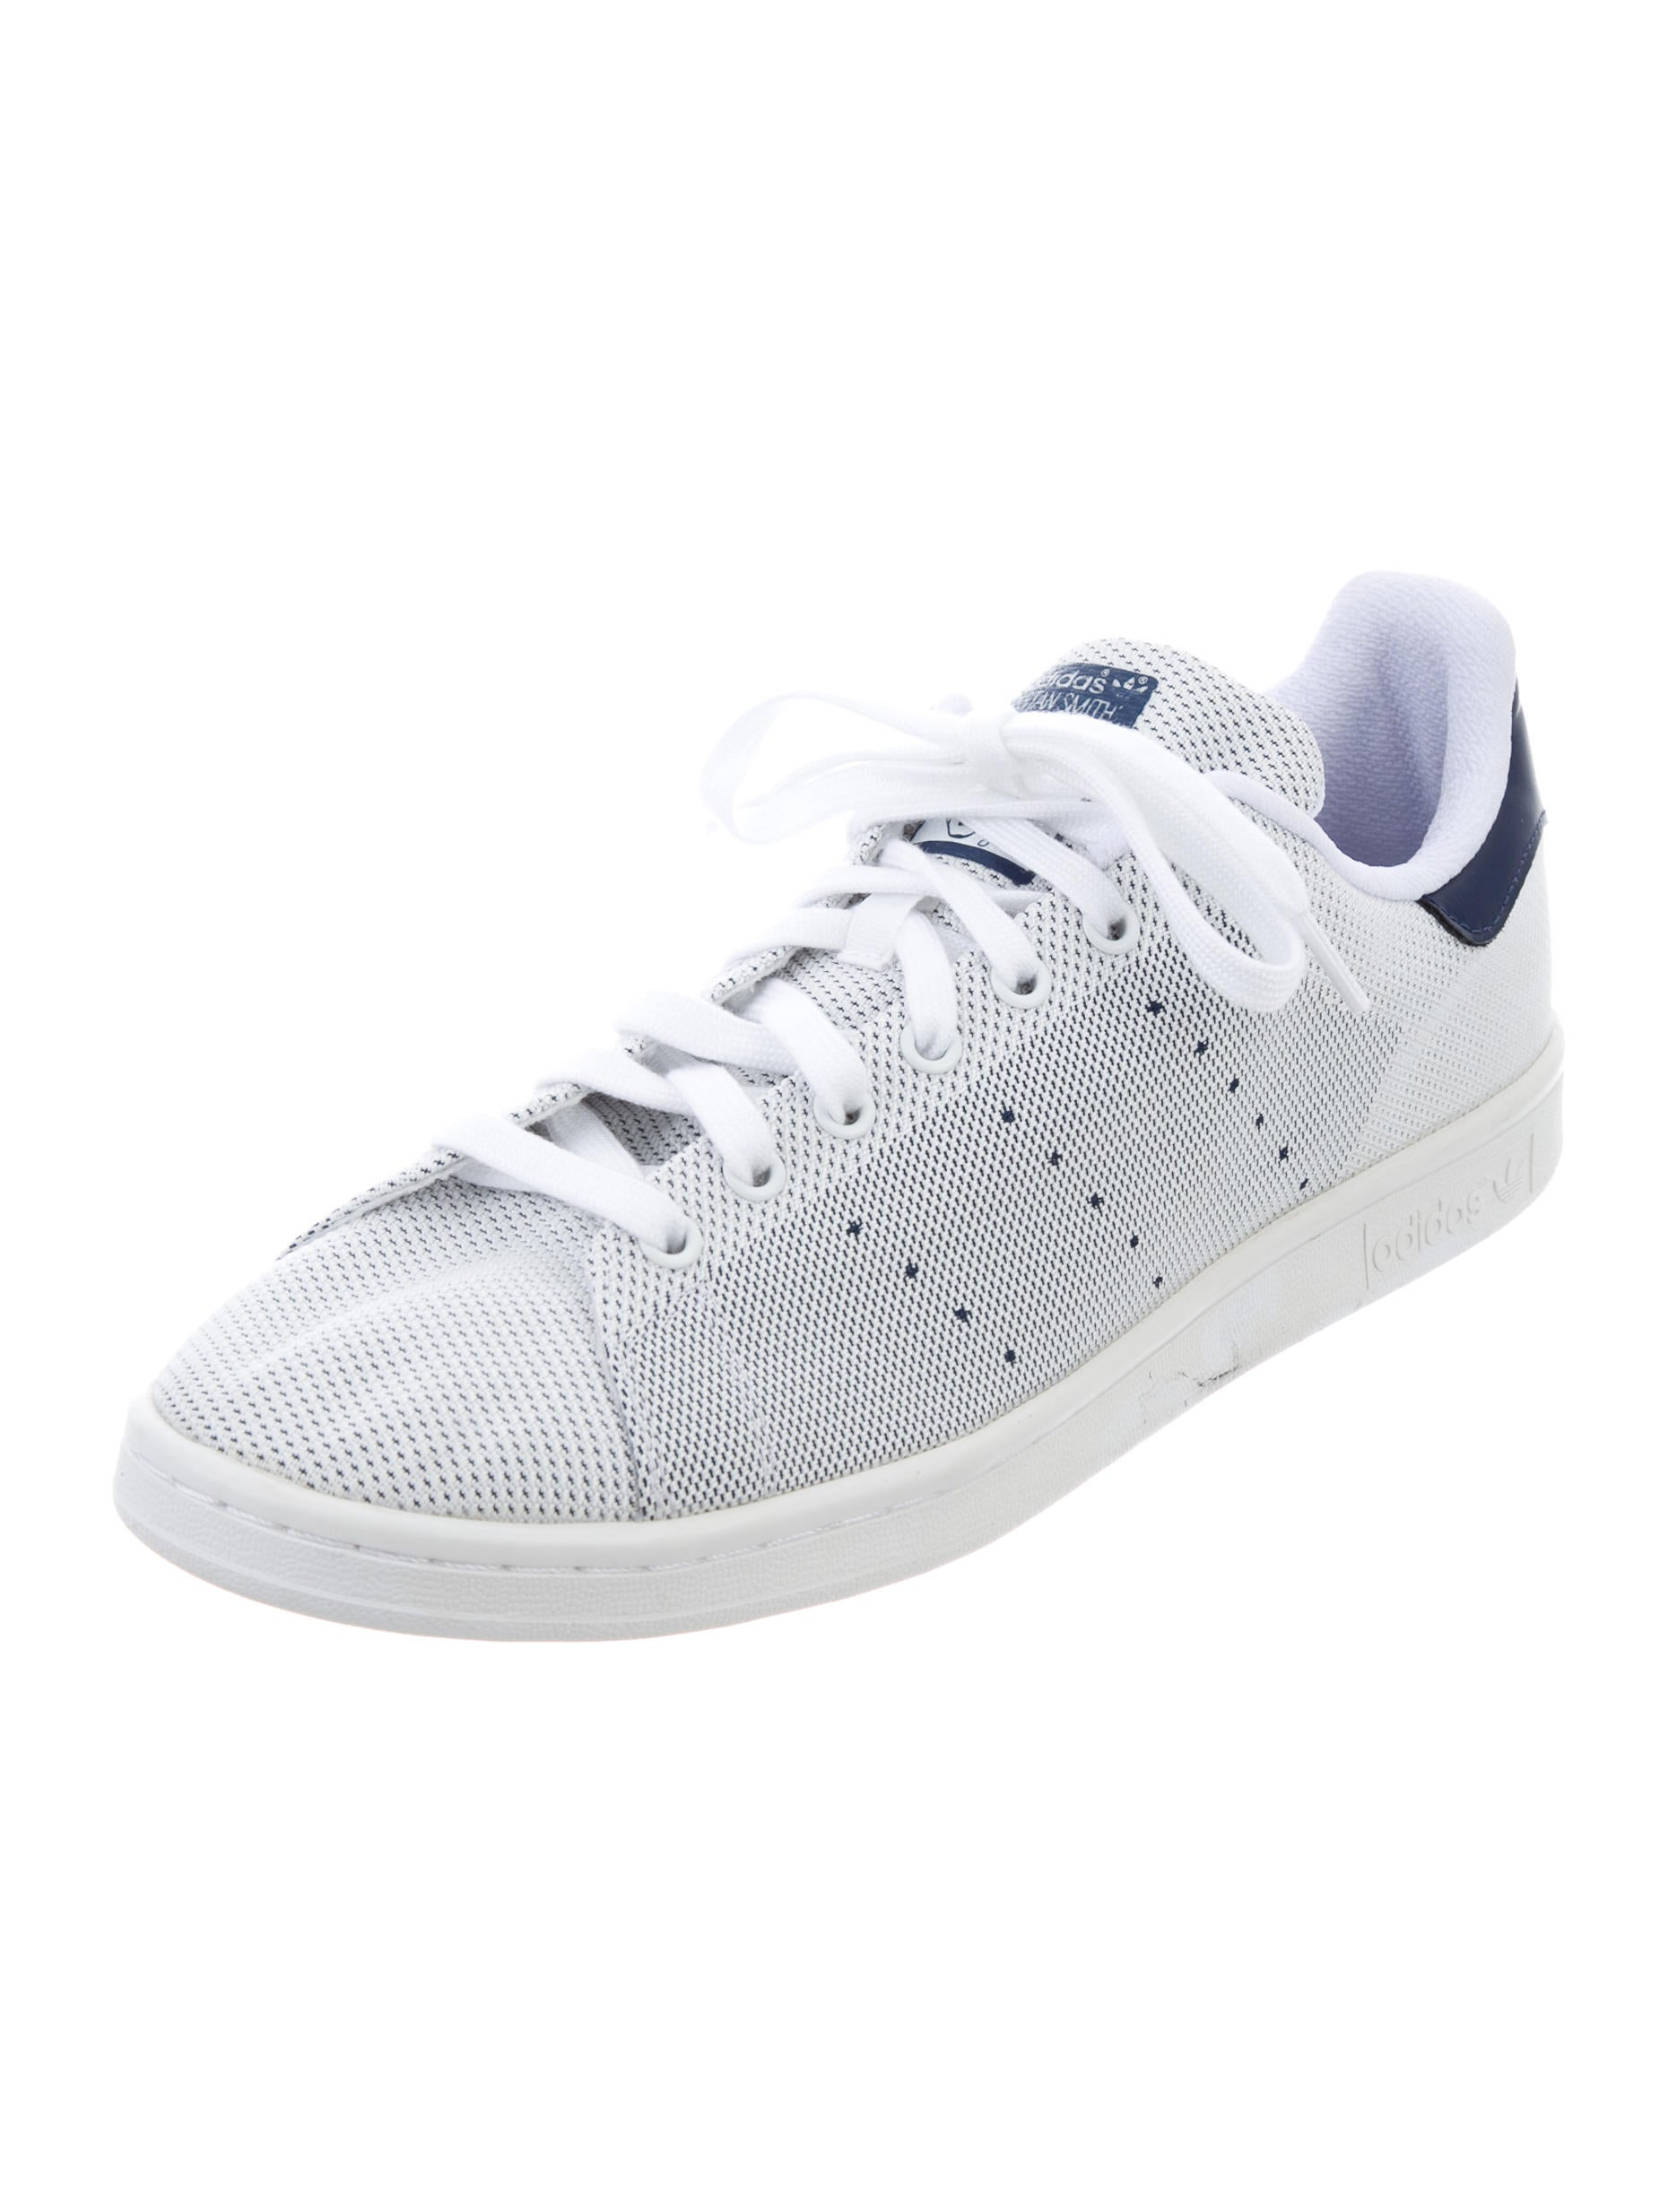 adidas stan smith primeknit sneakers shoes w2ads20339. Black Bedroom Furniture Sets. Home Design Ideas